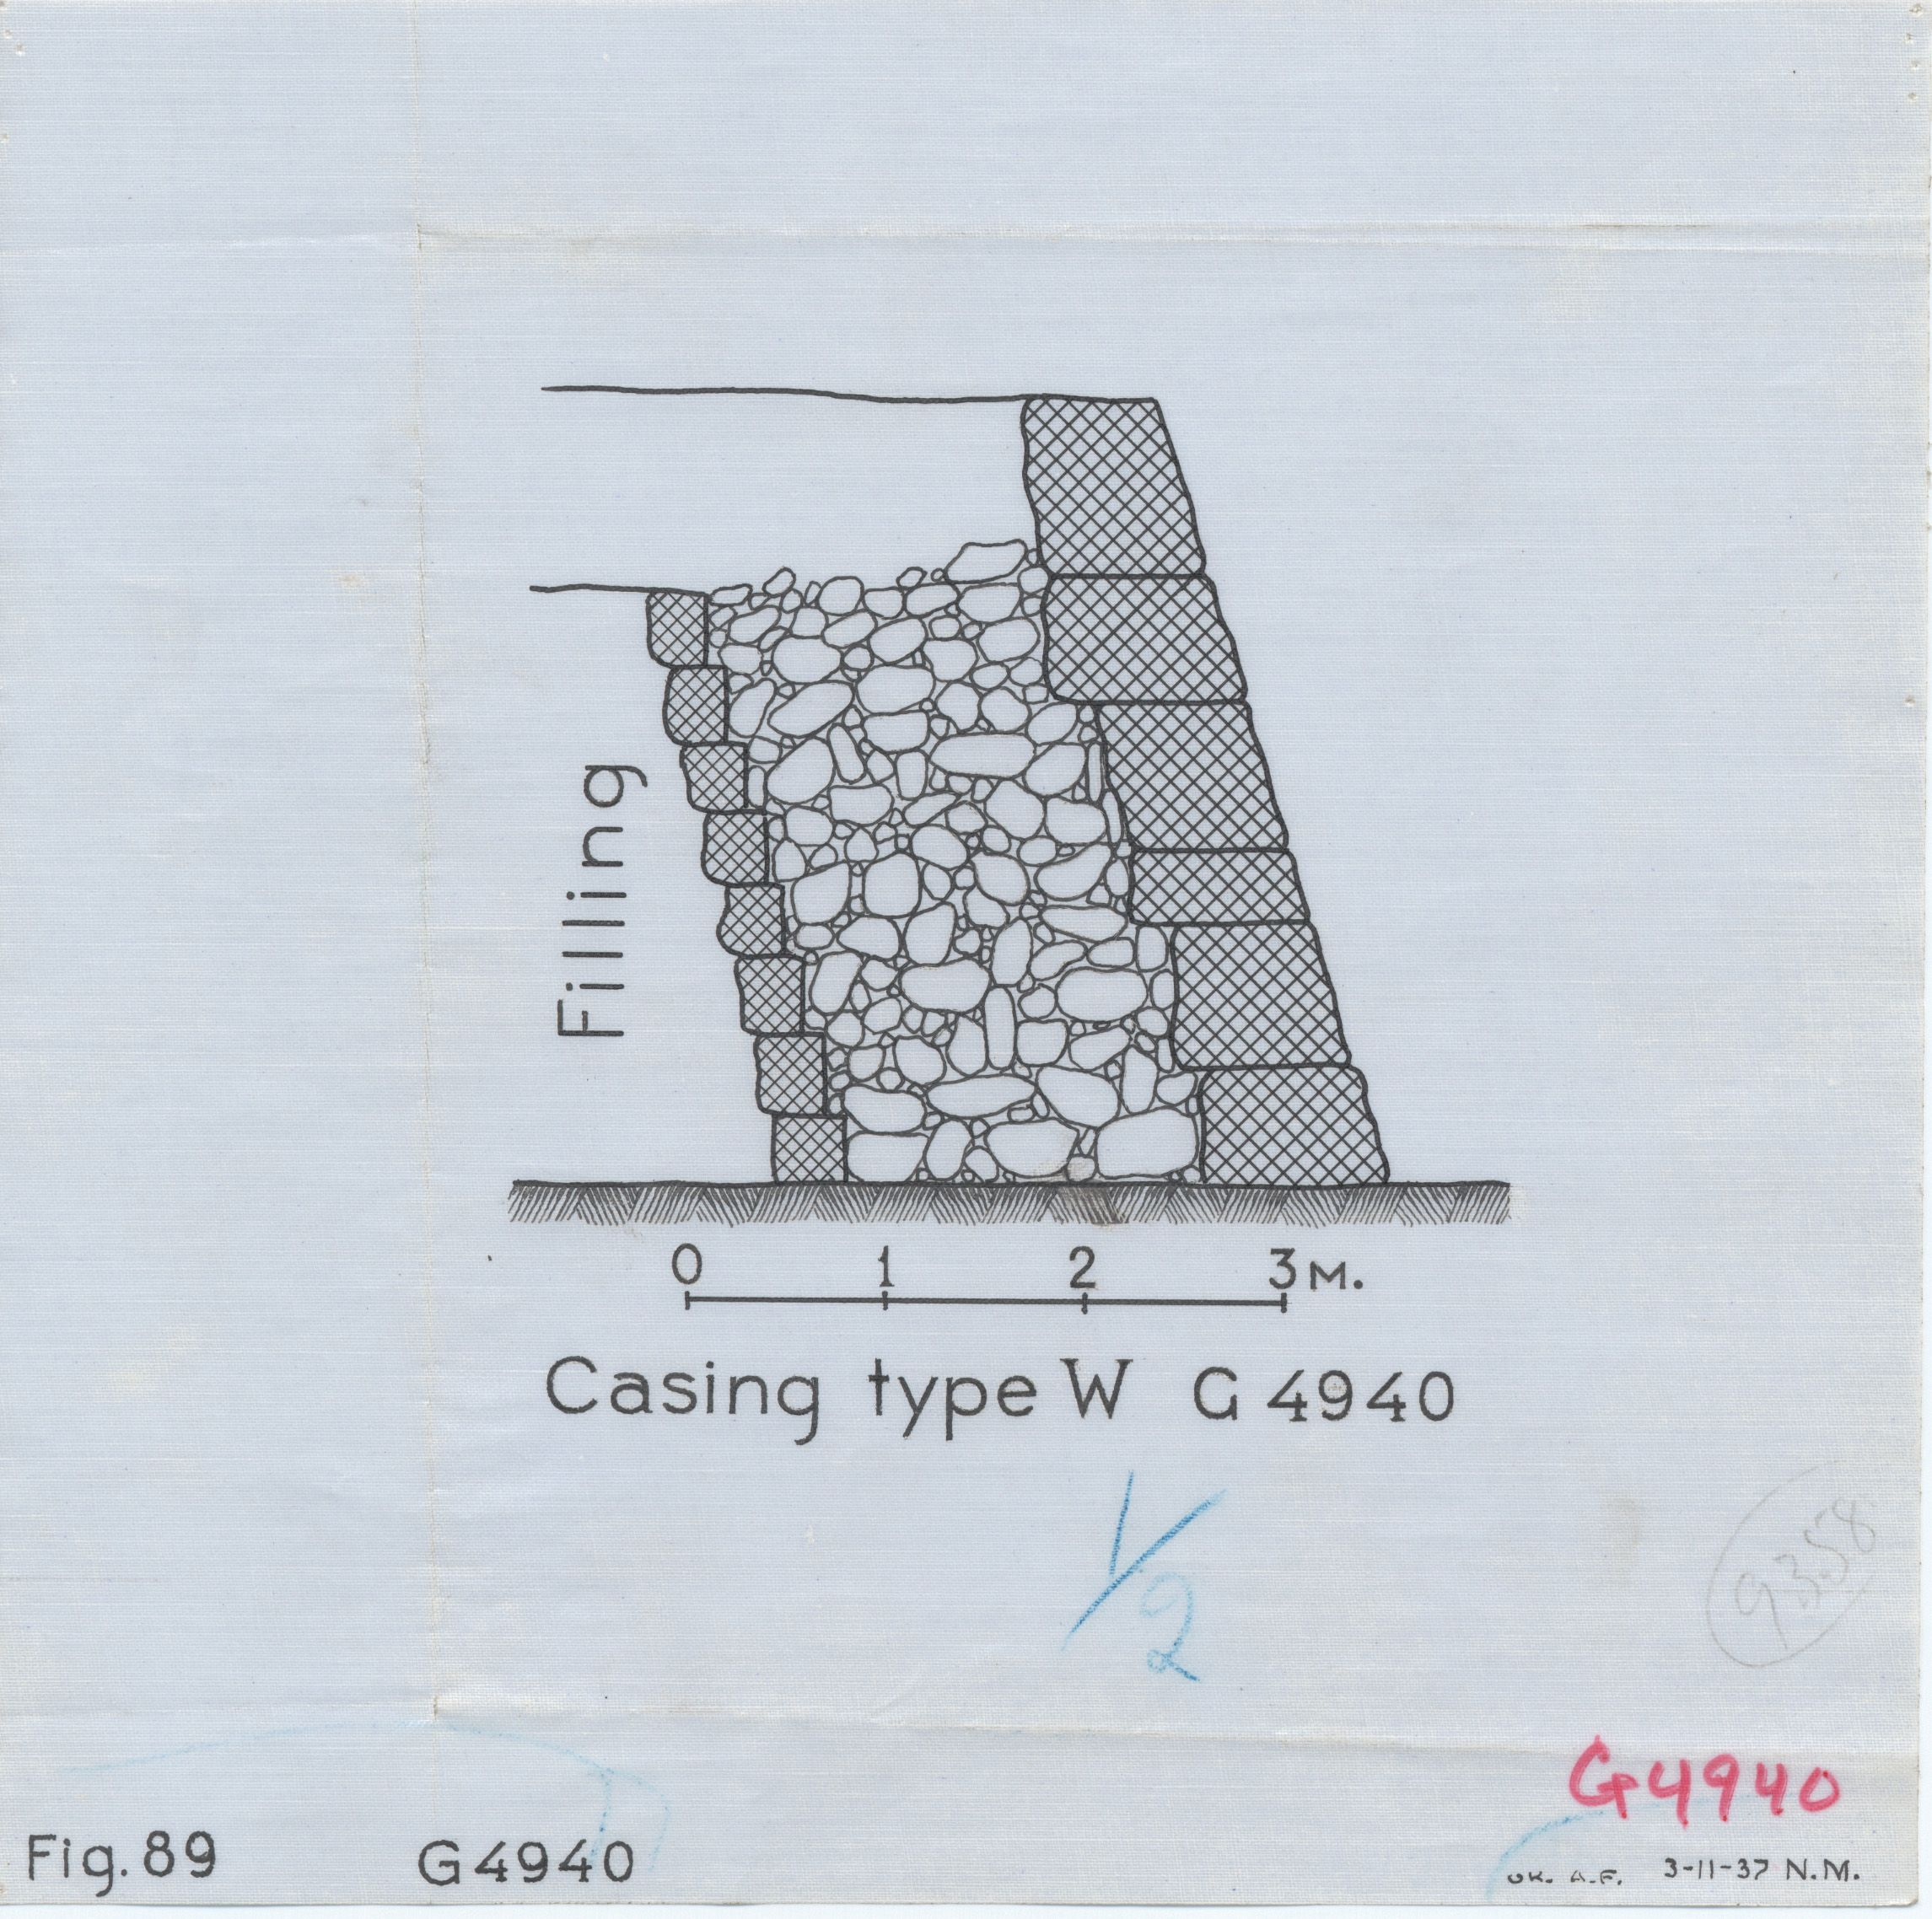 Maps and plans: G 4940, Section of casing type W